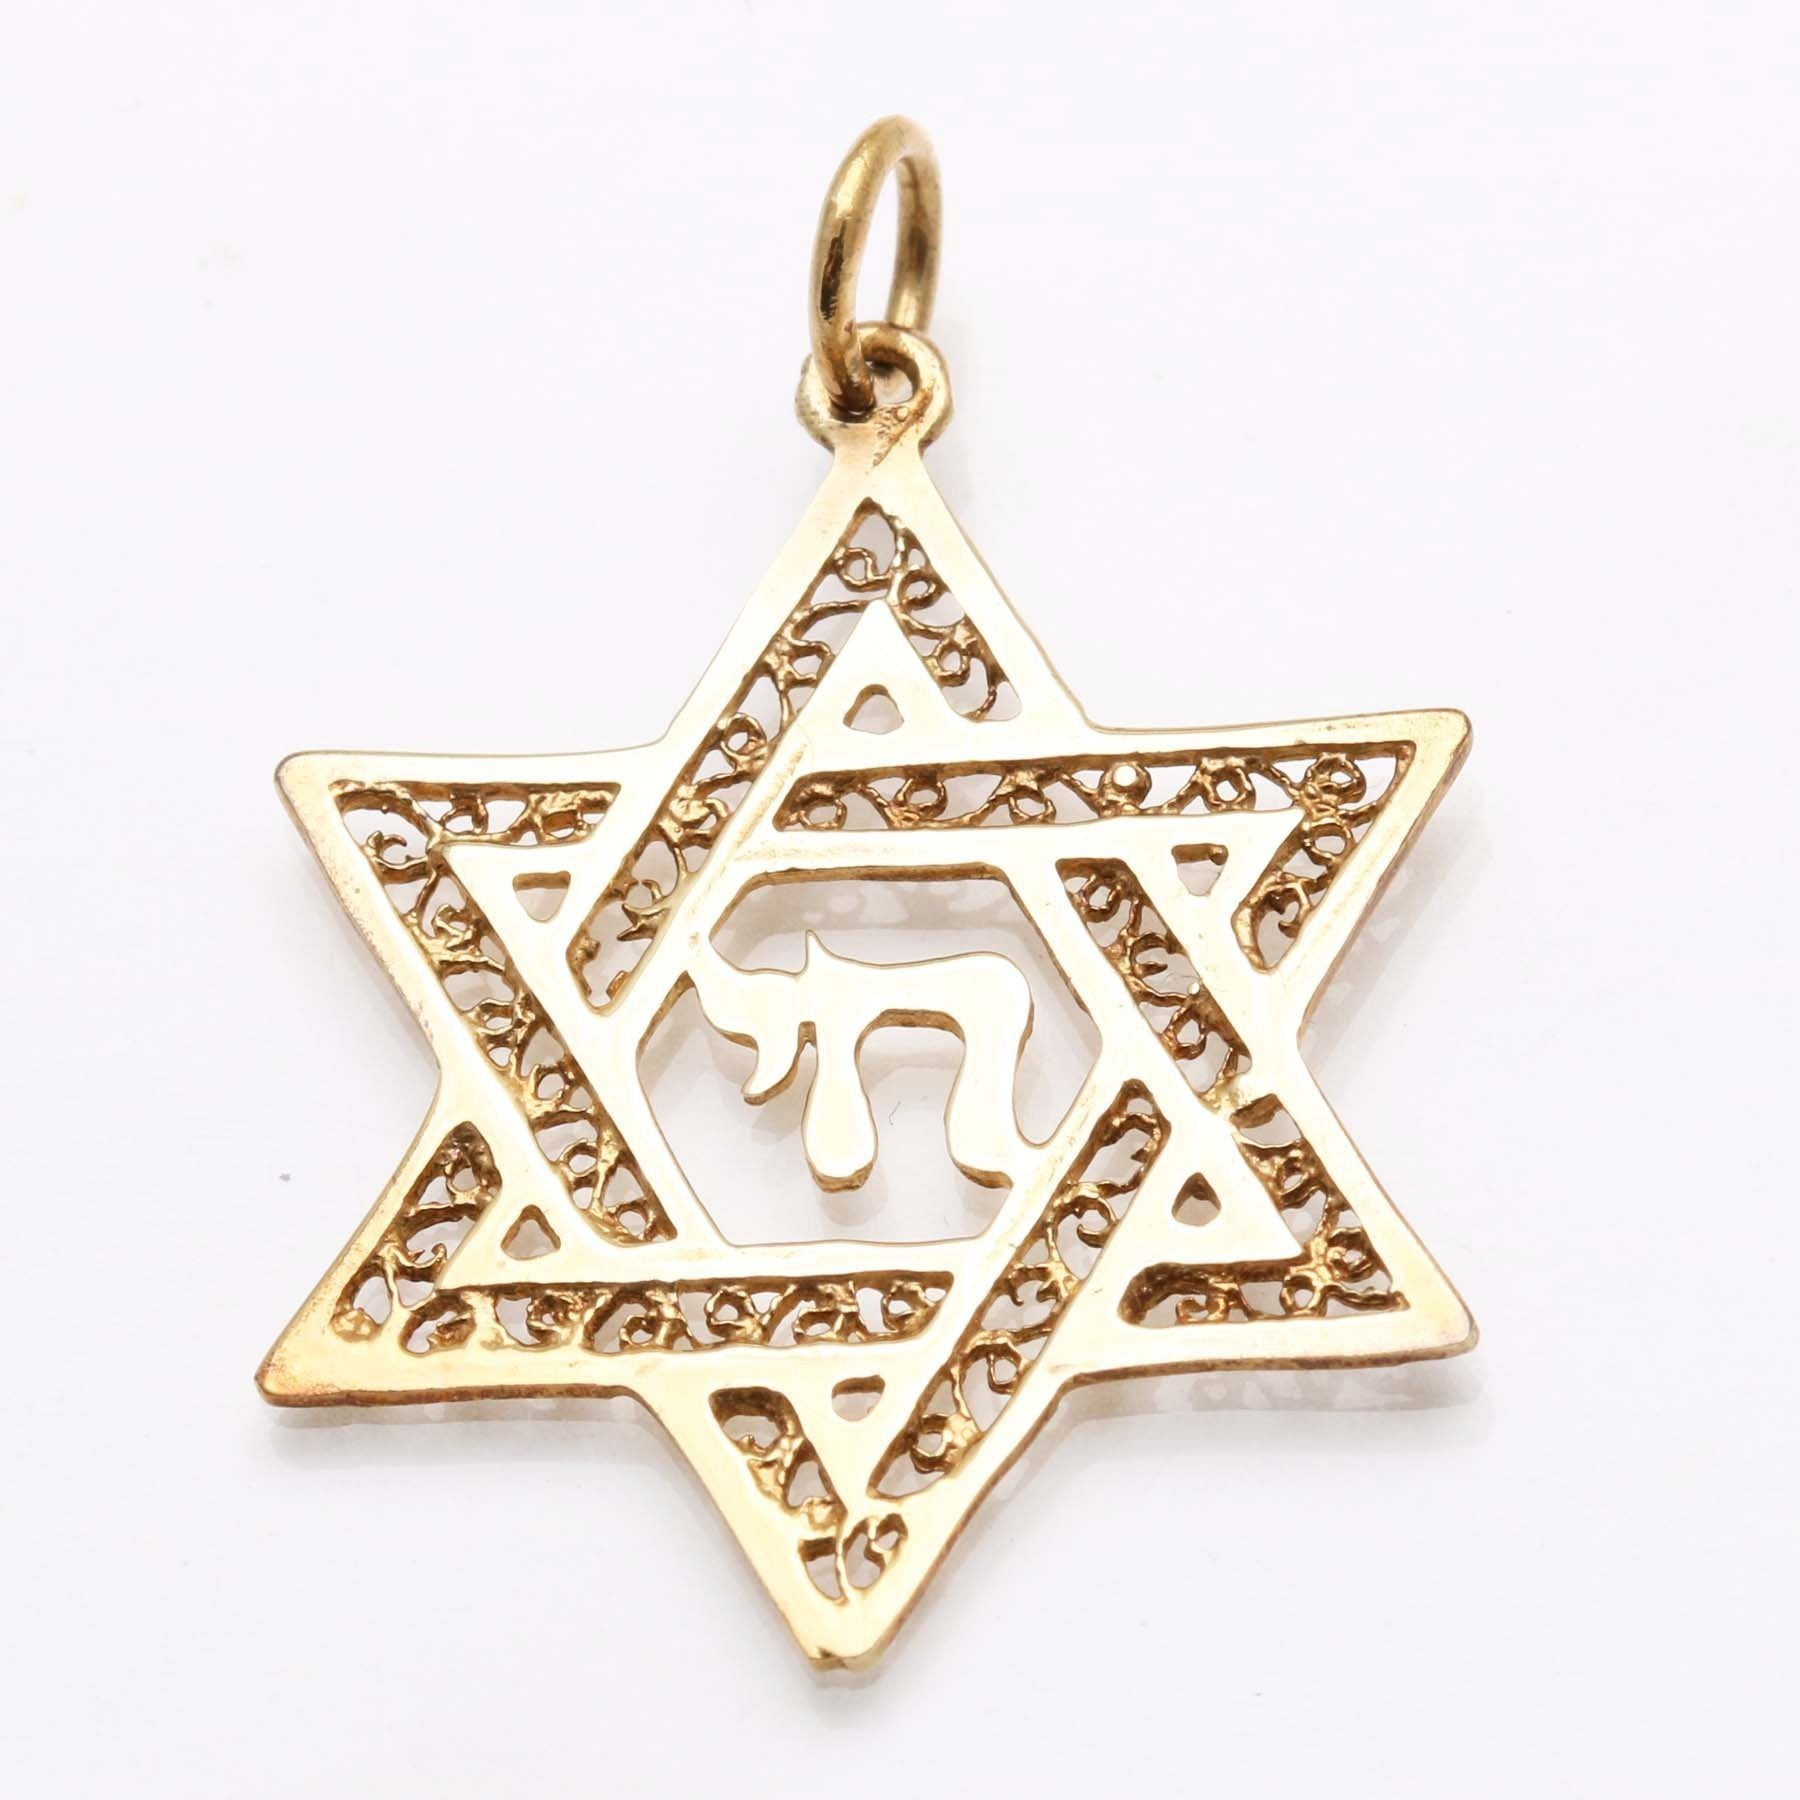 jewish pendant com chai product dhgate charm alloy plated circle with zinc from silver myshape gold jewelry kiki hollow